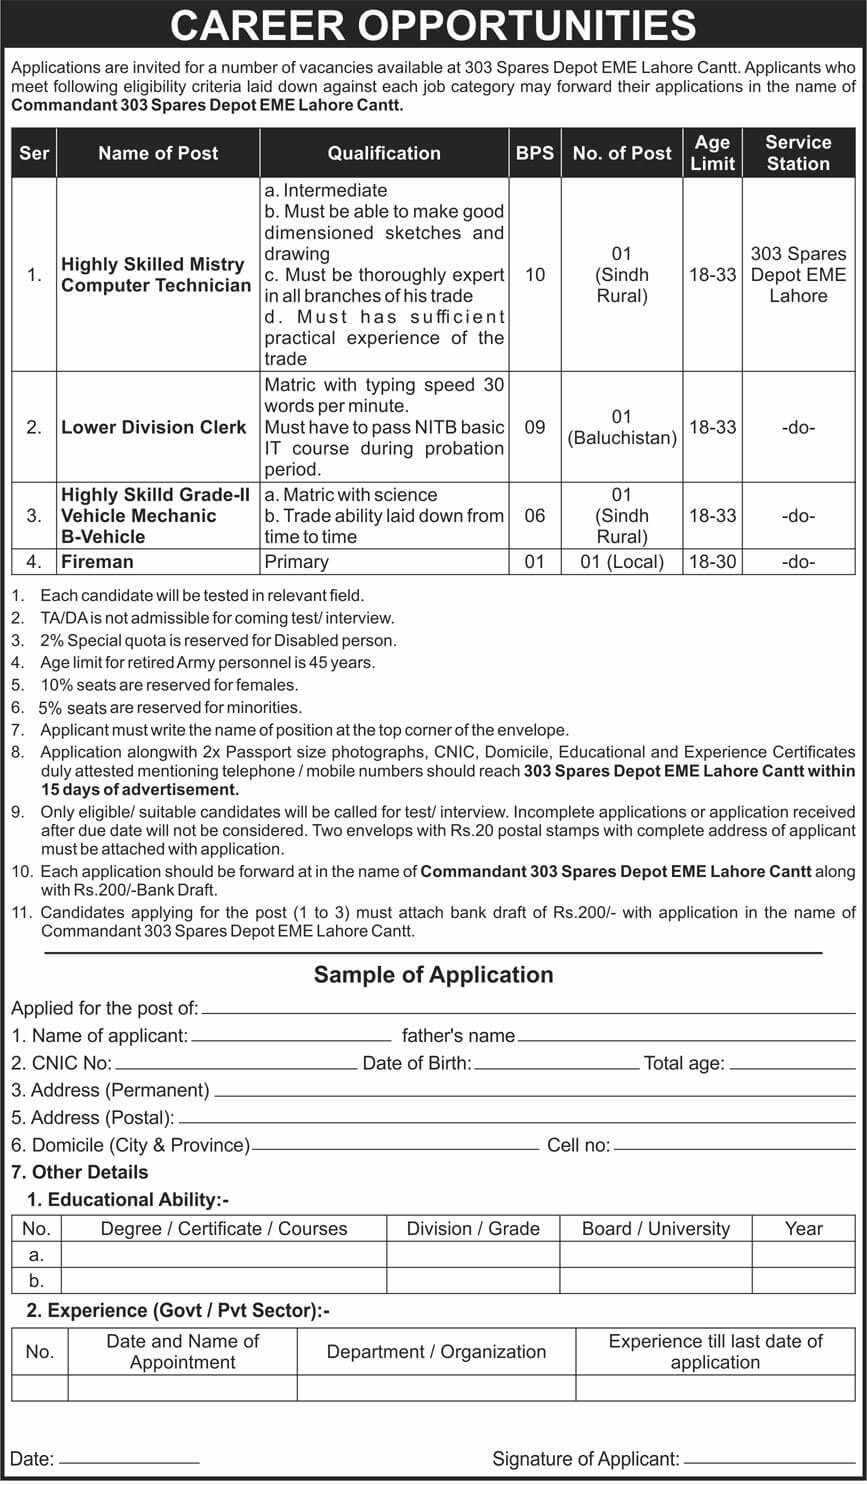 Pak Army 303 Spares Depot EME Lahore Cantt Jobs 2021 Application Form